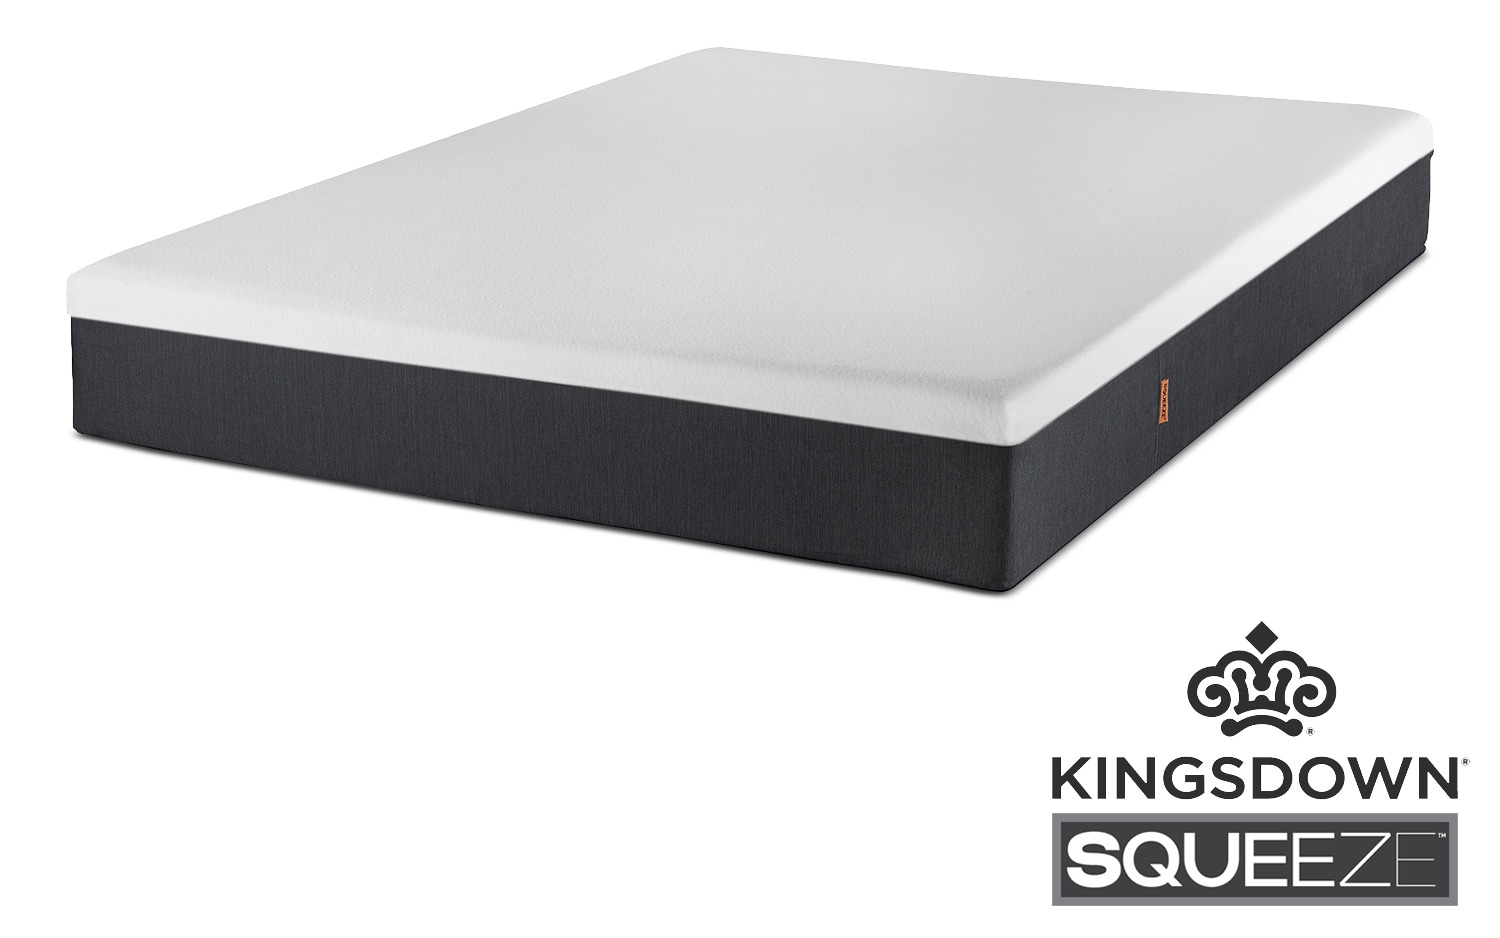 """Mattresses and Bedding - Kingsdown Squeeze Twin 10"""" Mattress-in-a-Box"""